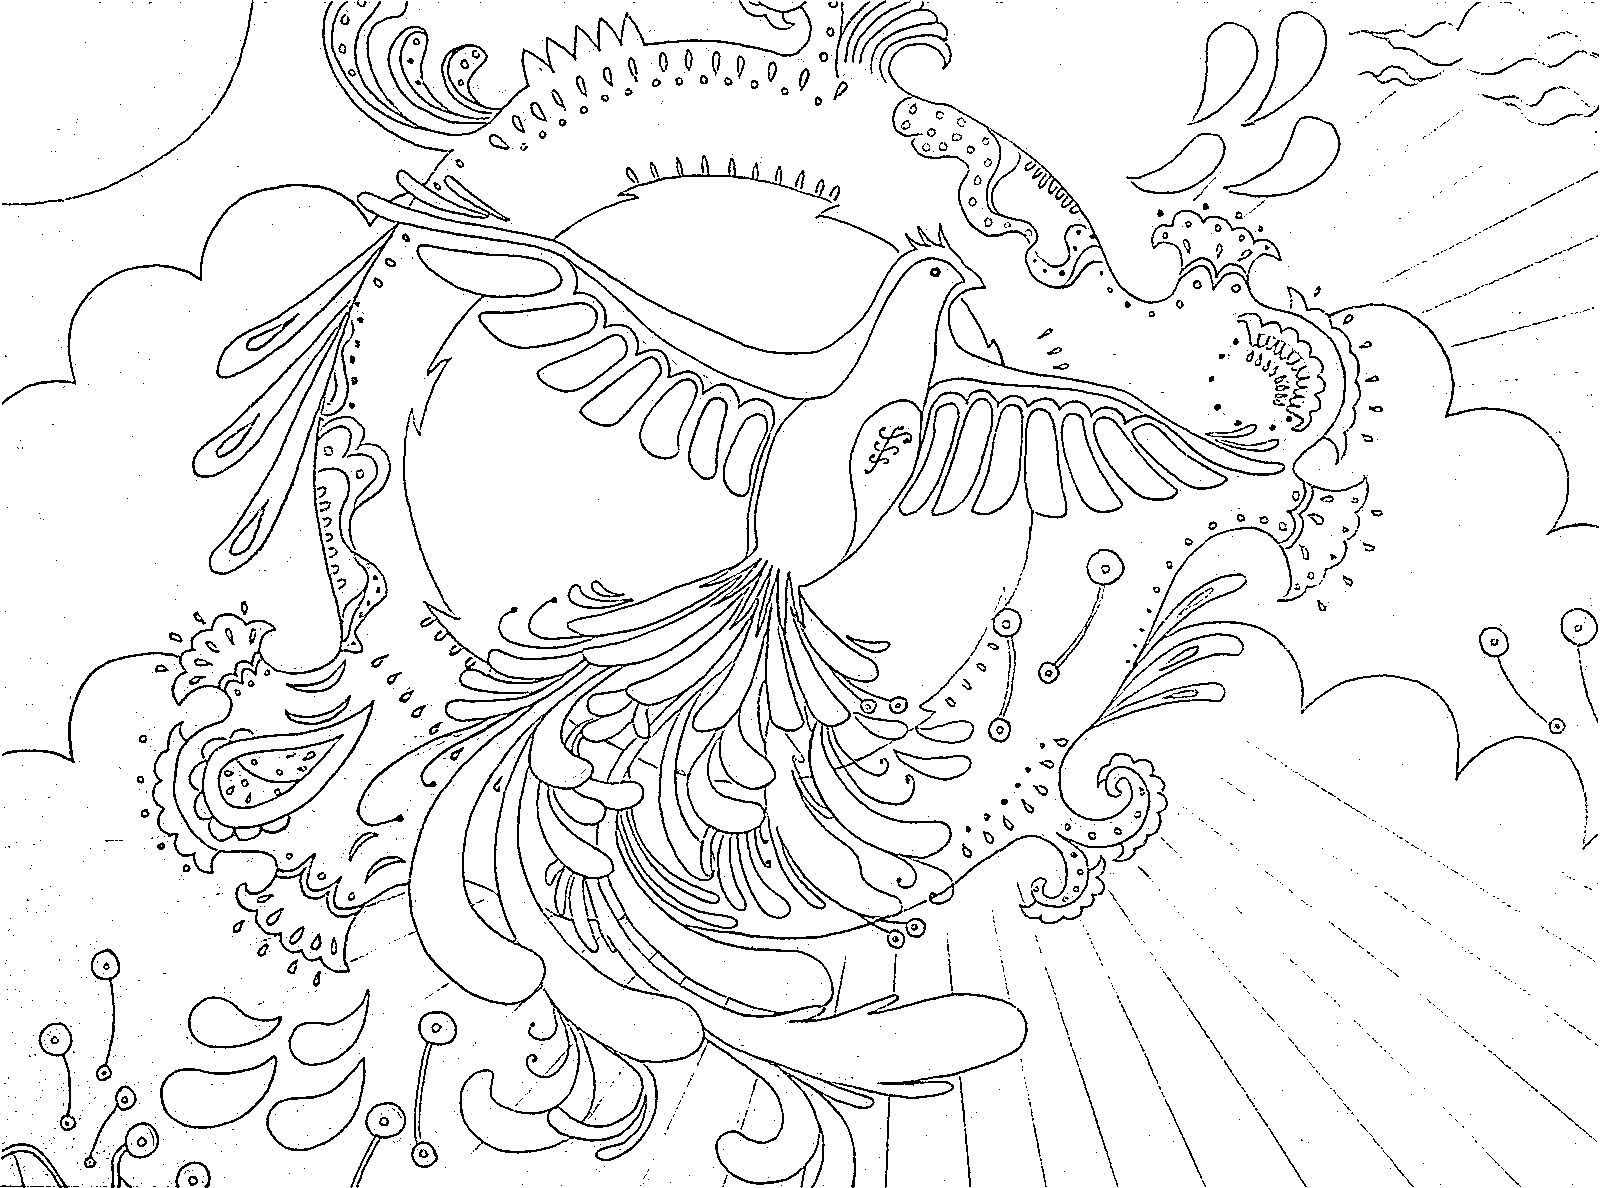 Vintage Phoenix Sketch Set And The Design Process Of The Abstract Phoenix Wall Of Wonders